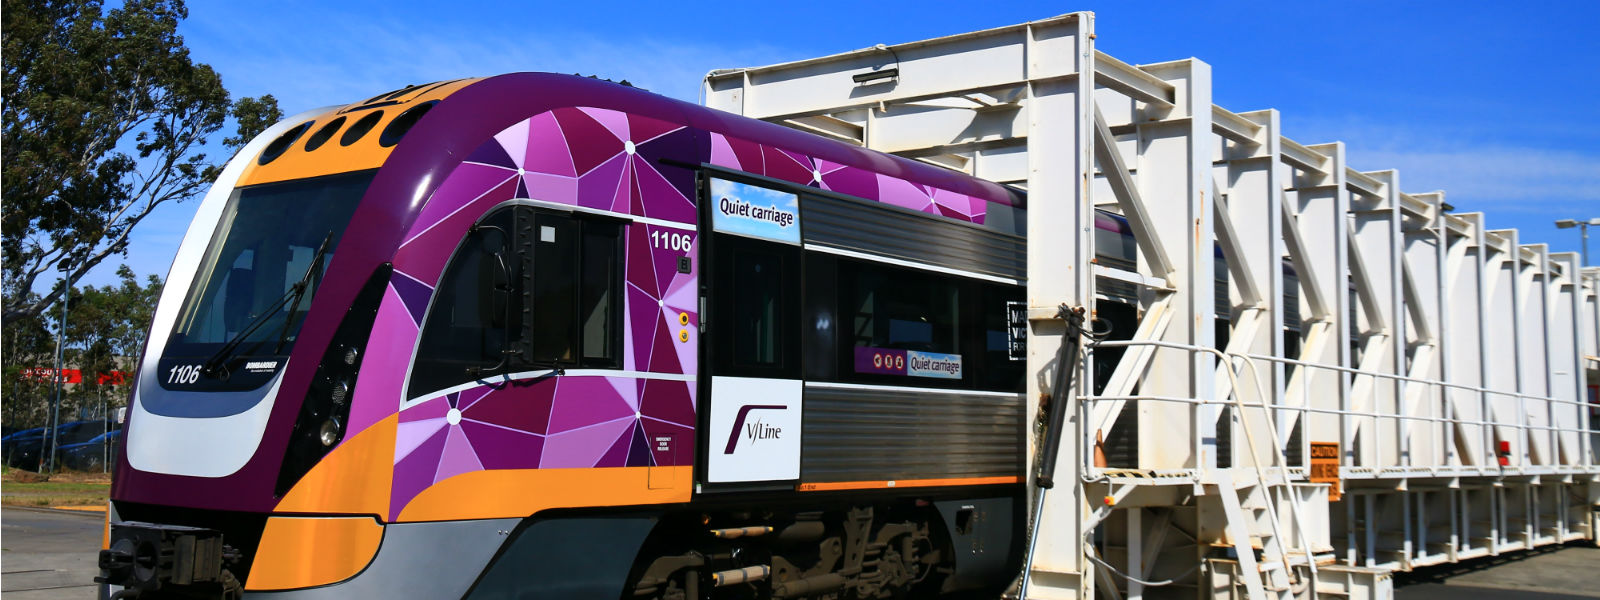 Image showing a V/Line train being constructed